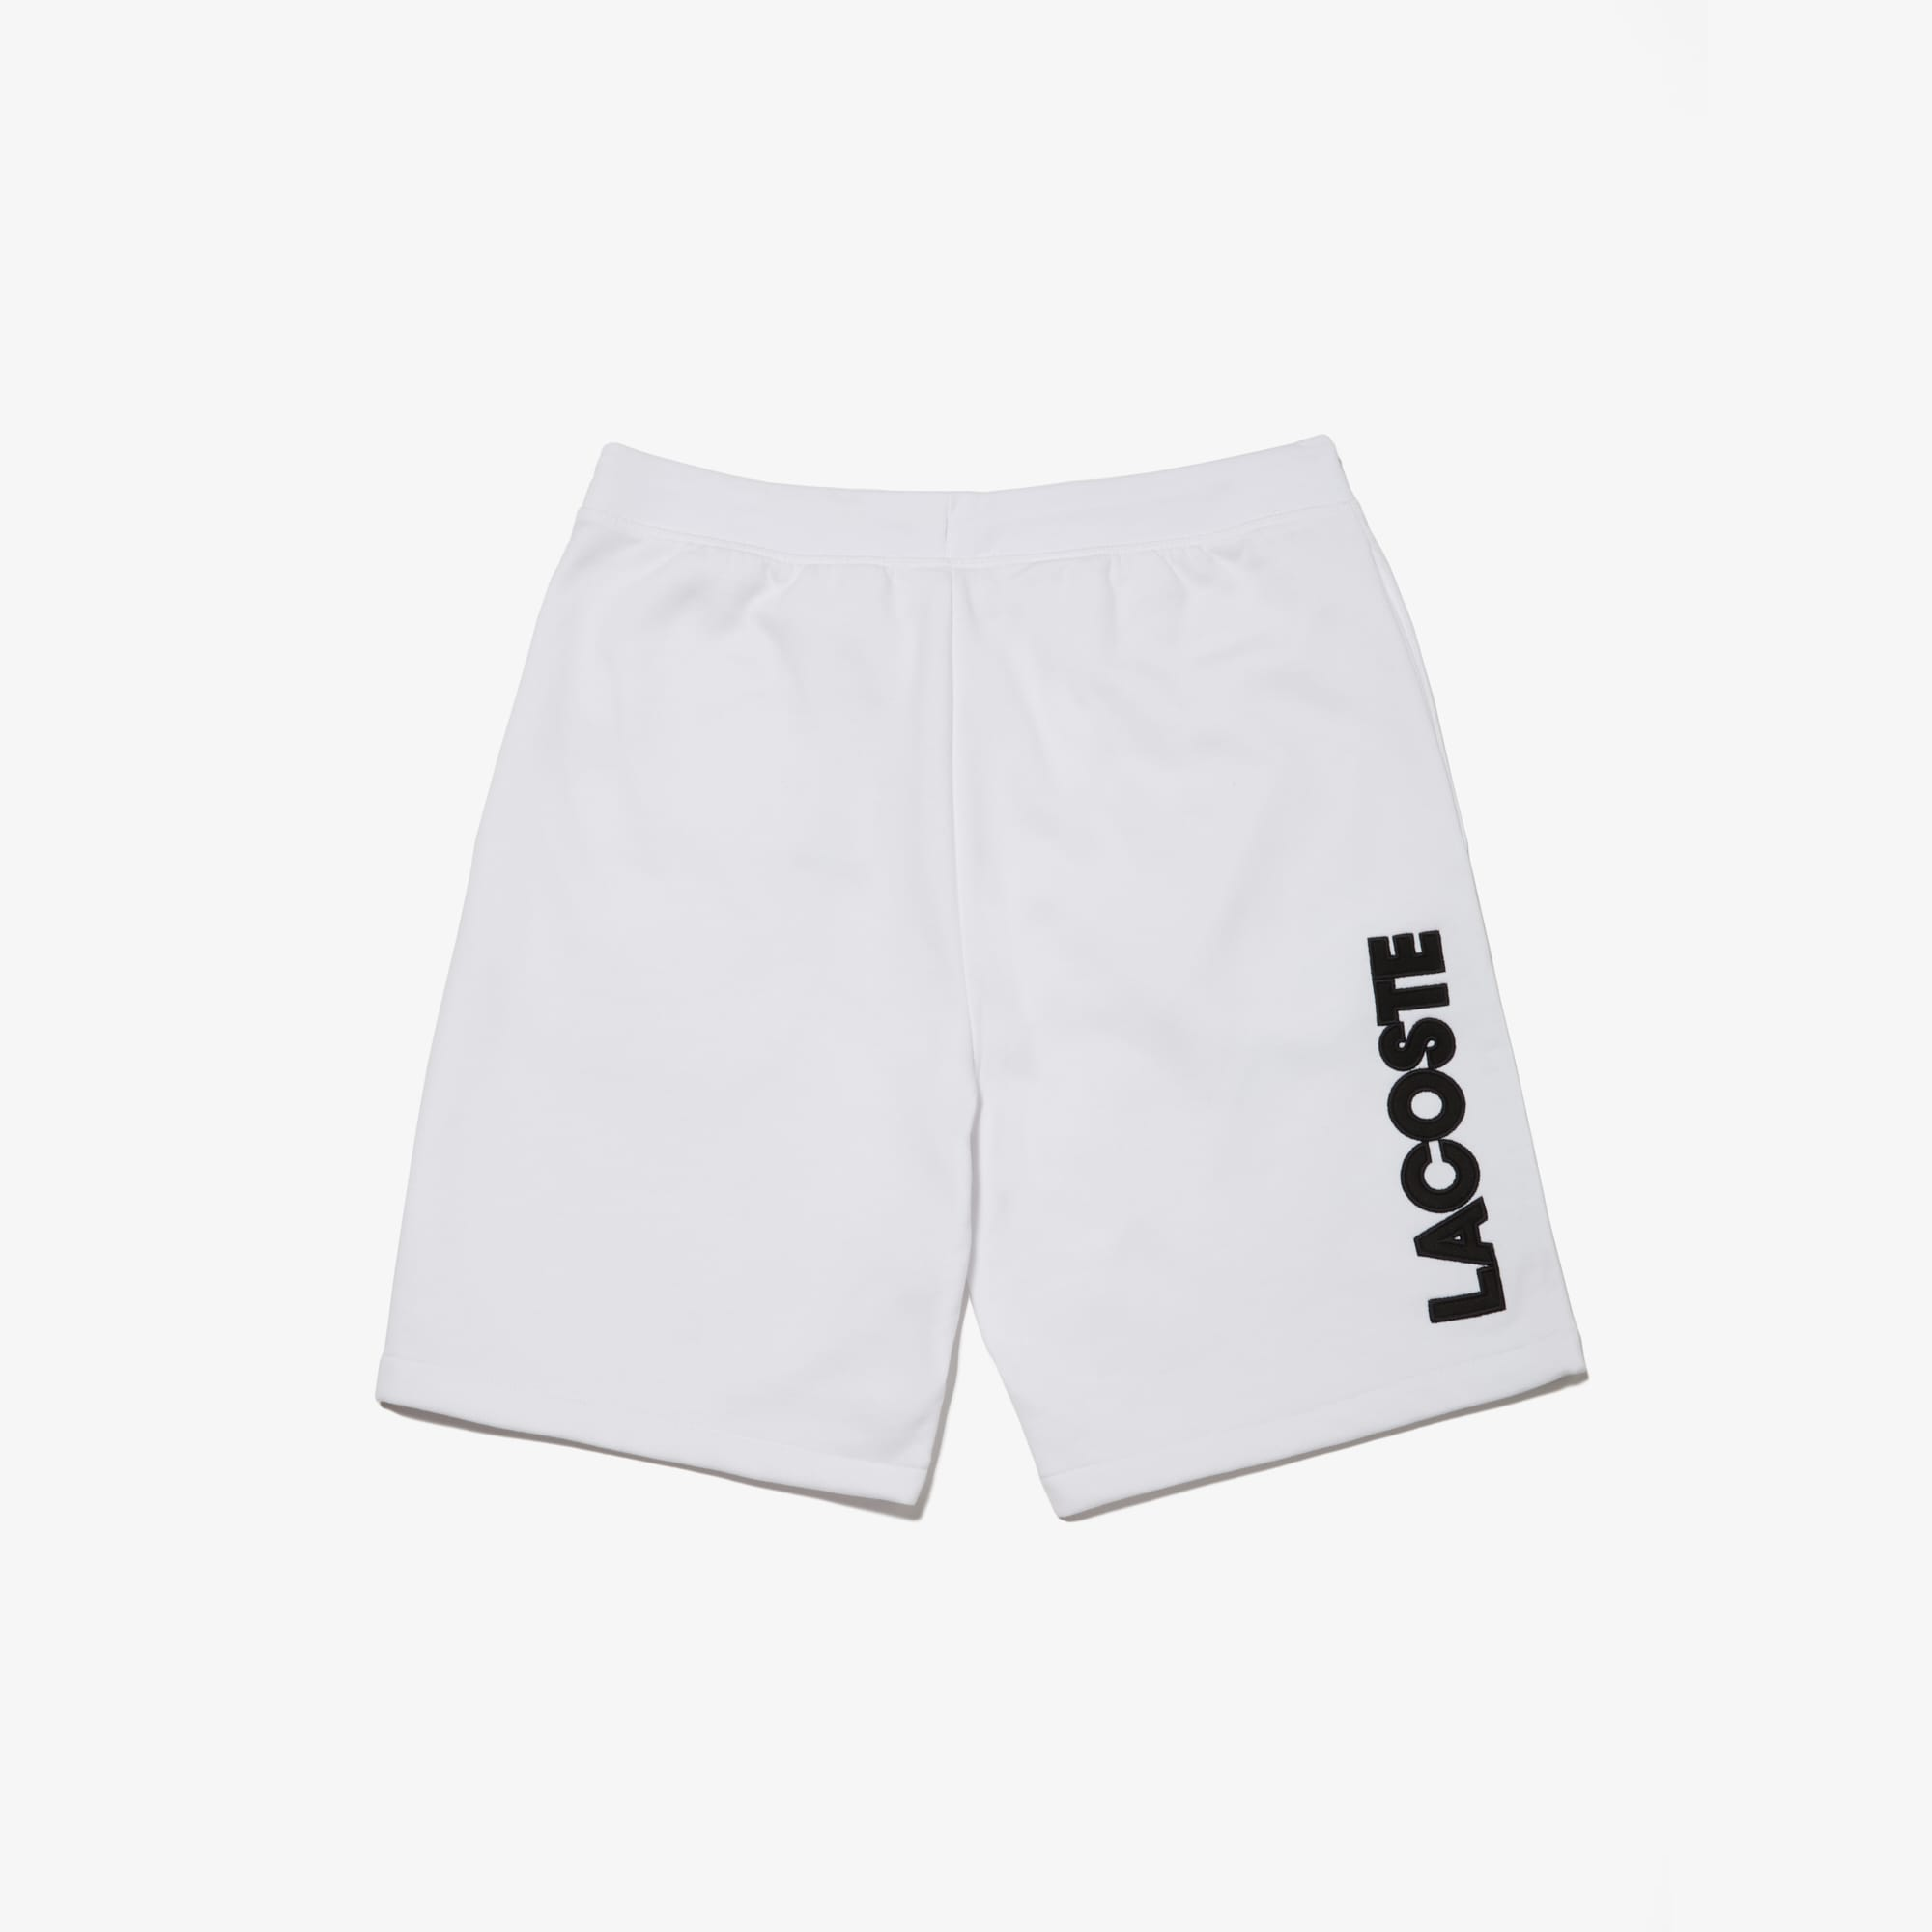 Men's SPORT Fleece Shorts